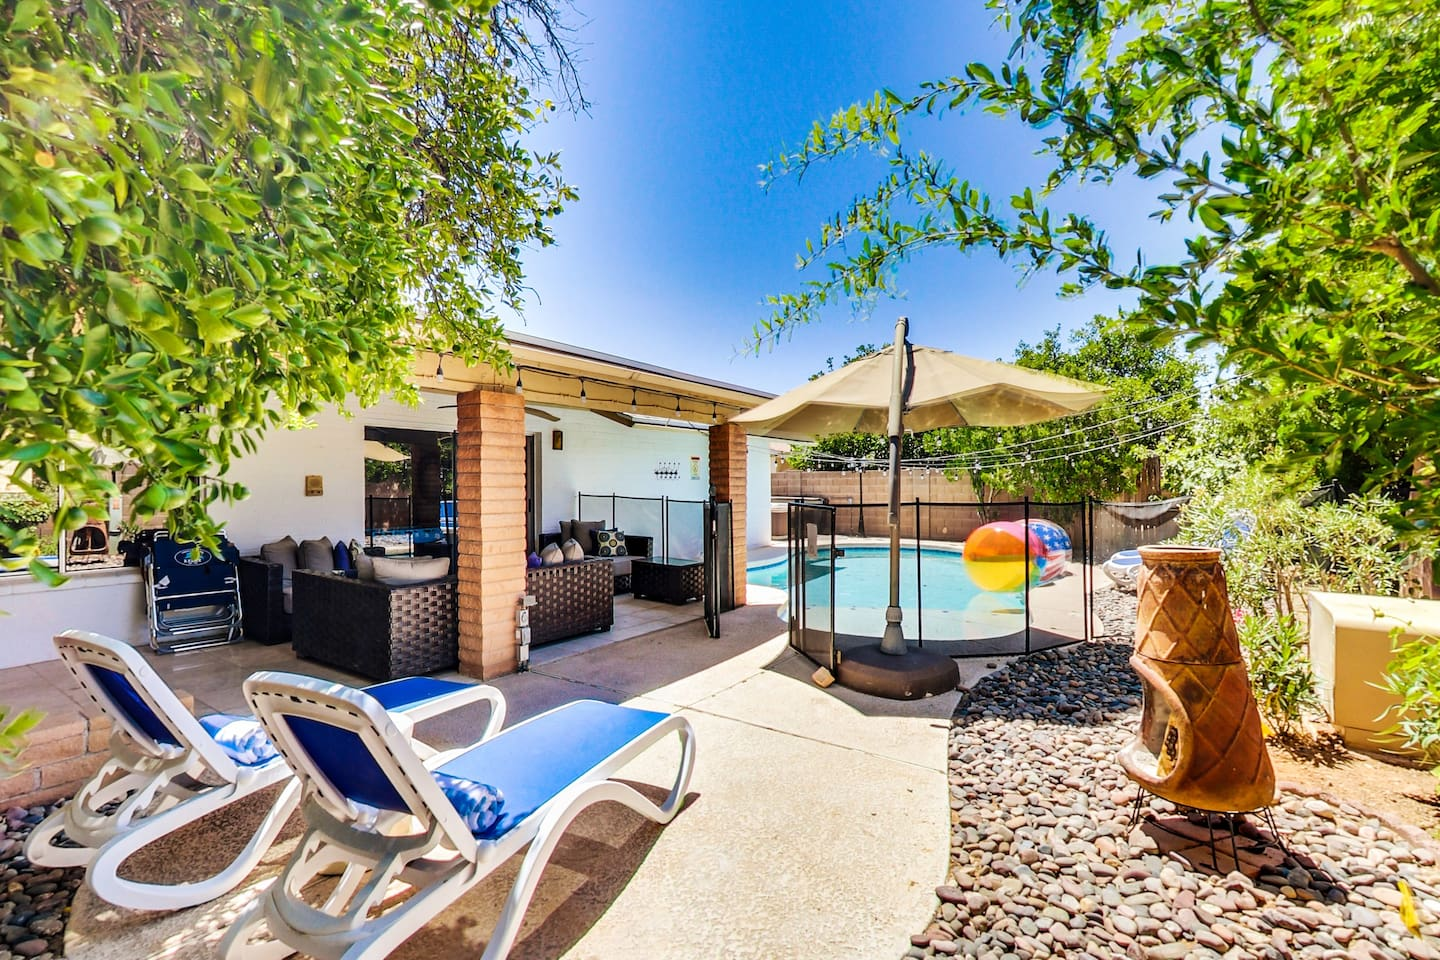 Large pool with cantilever umbrella and comfortable chaises by the pomegranate tree